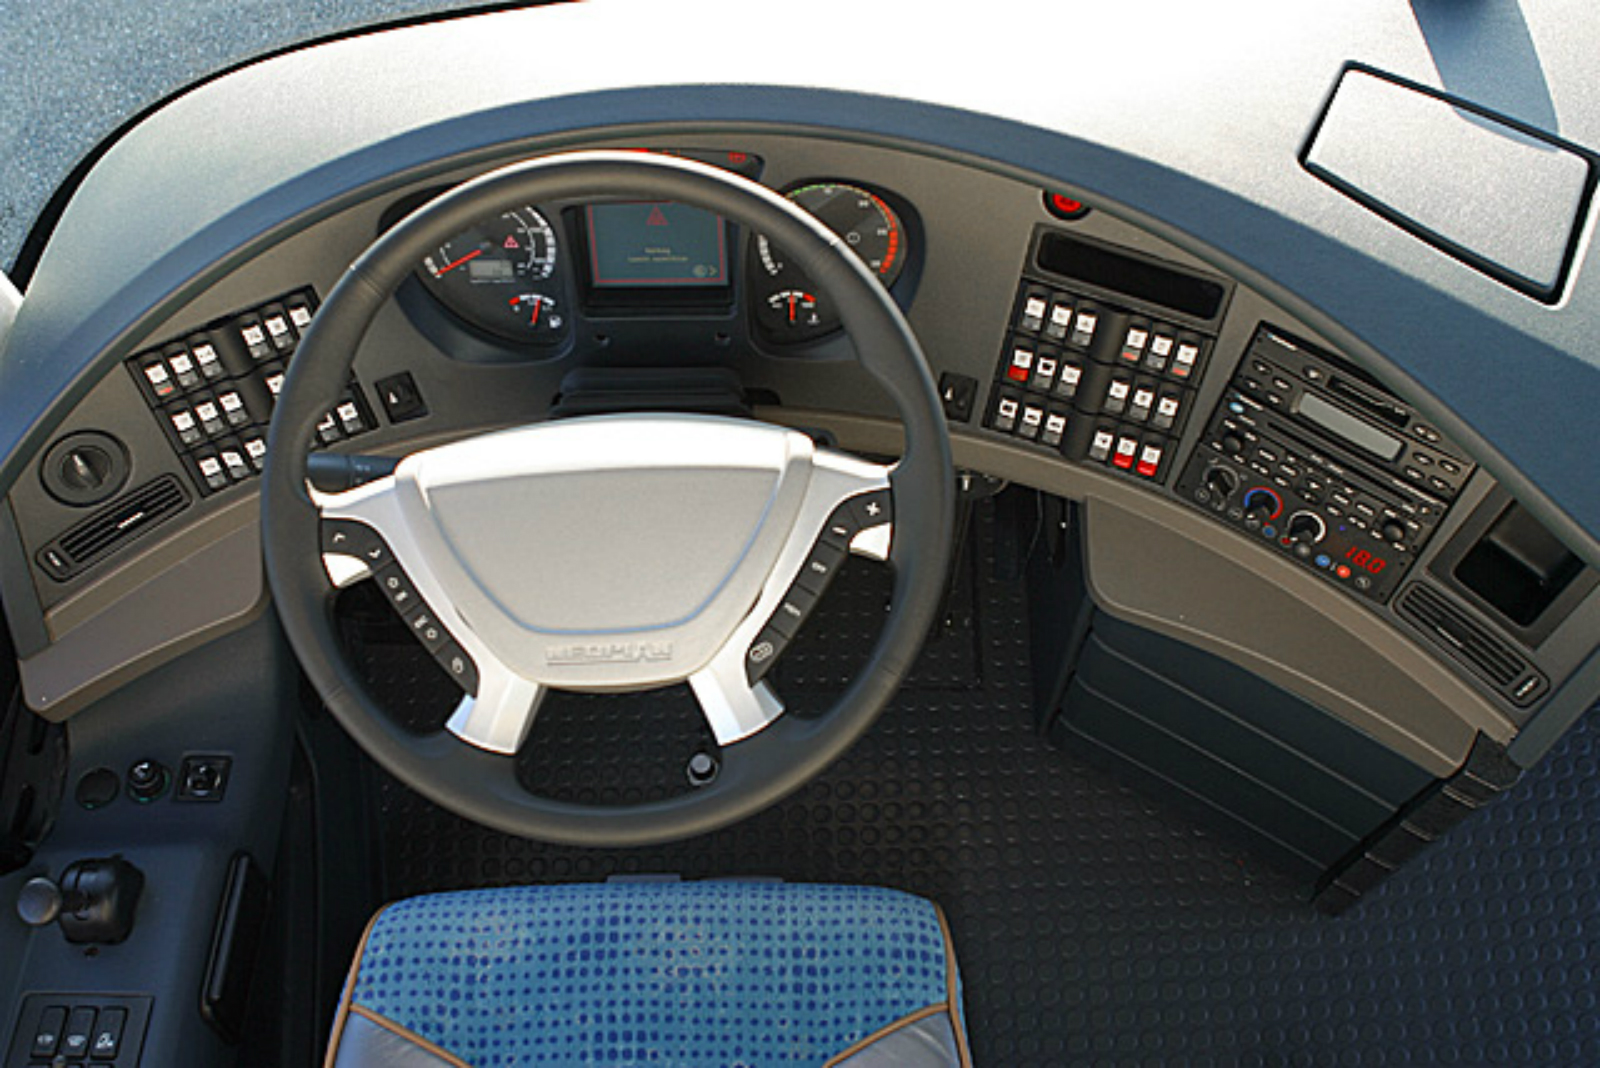 Toyota Camry Hd Wallpapers Neoplan Starliner Picture 10 Reviews News Specs Buy Car